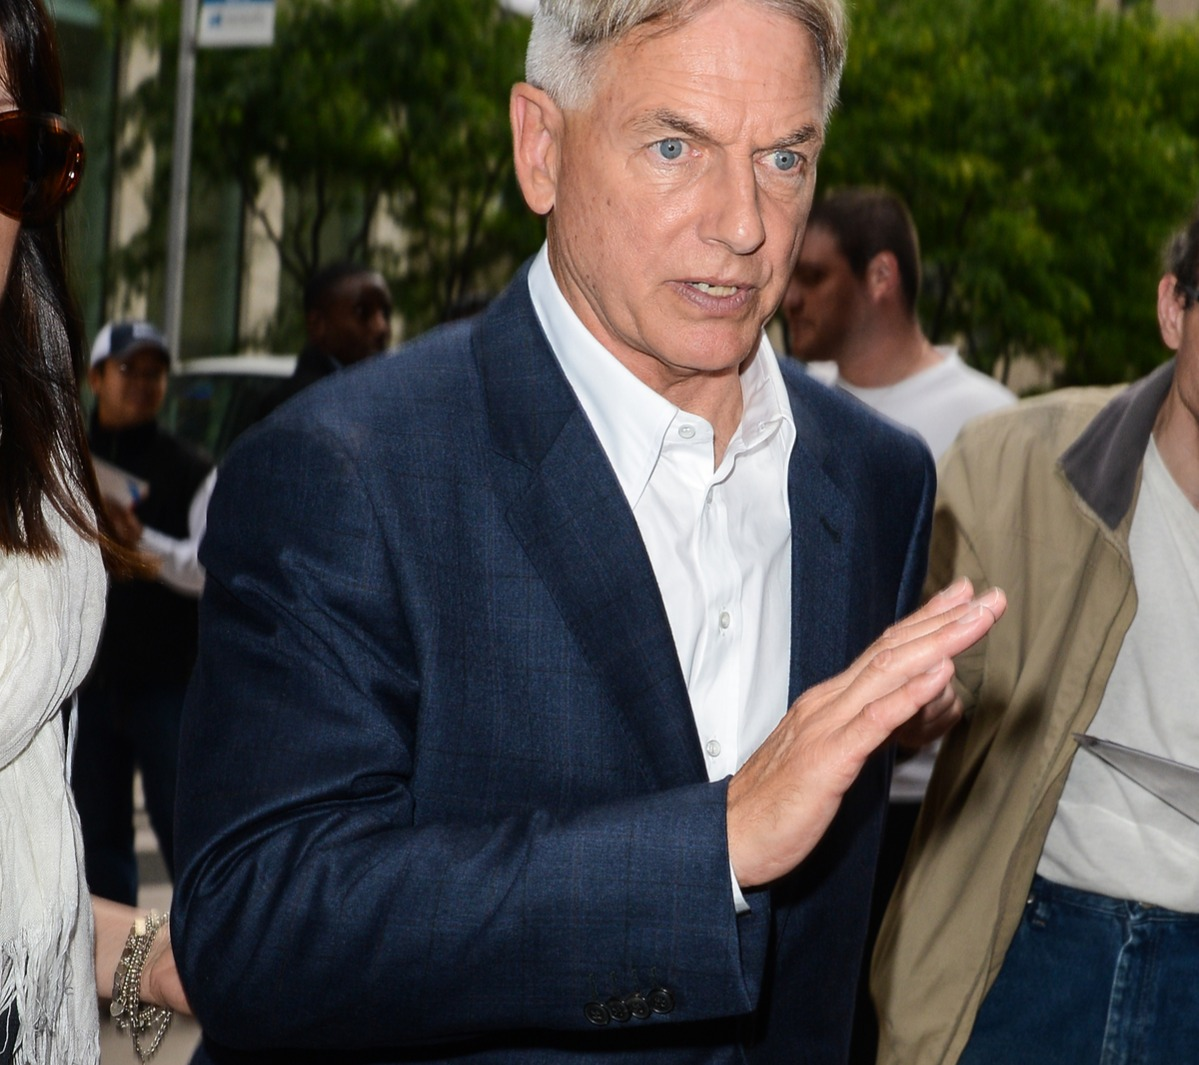 Actor Mark Harmon enters the Sirius XM Studios on September 22, 2014 in New York City.